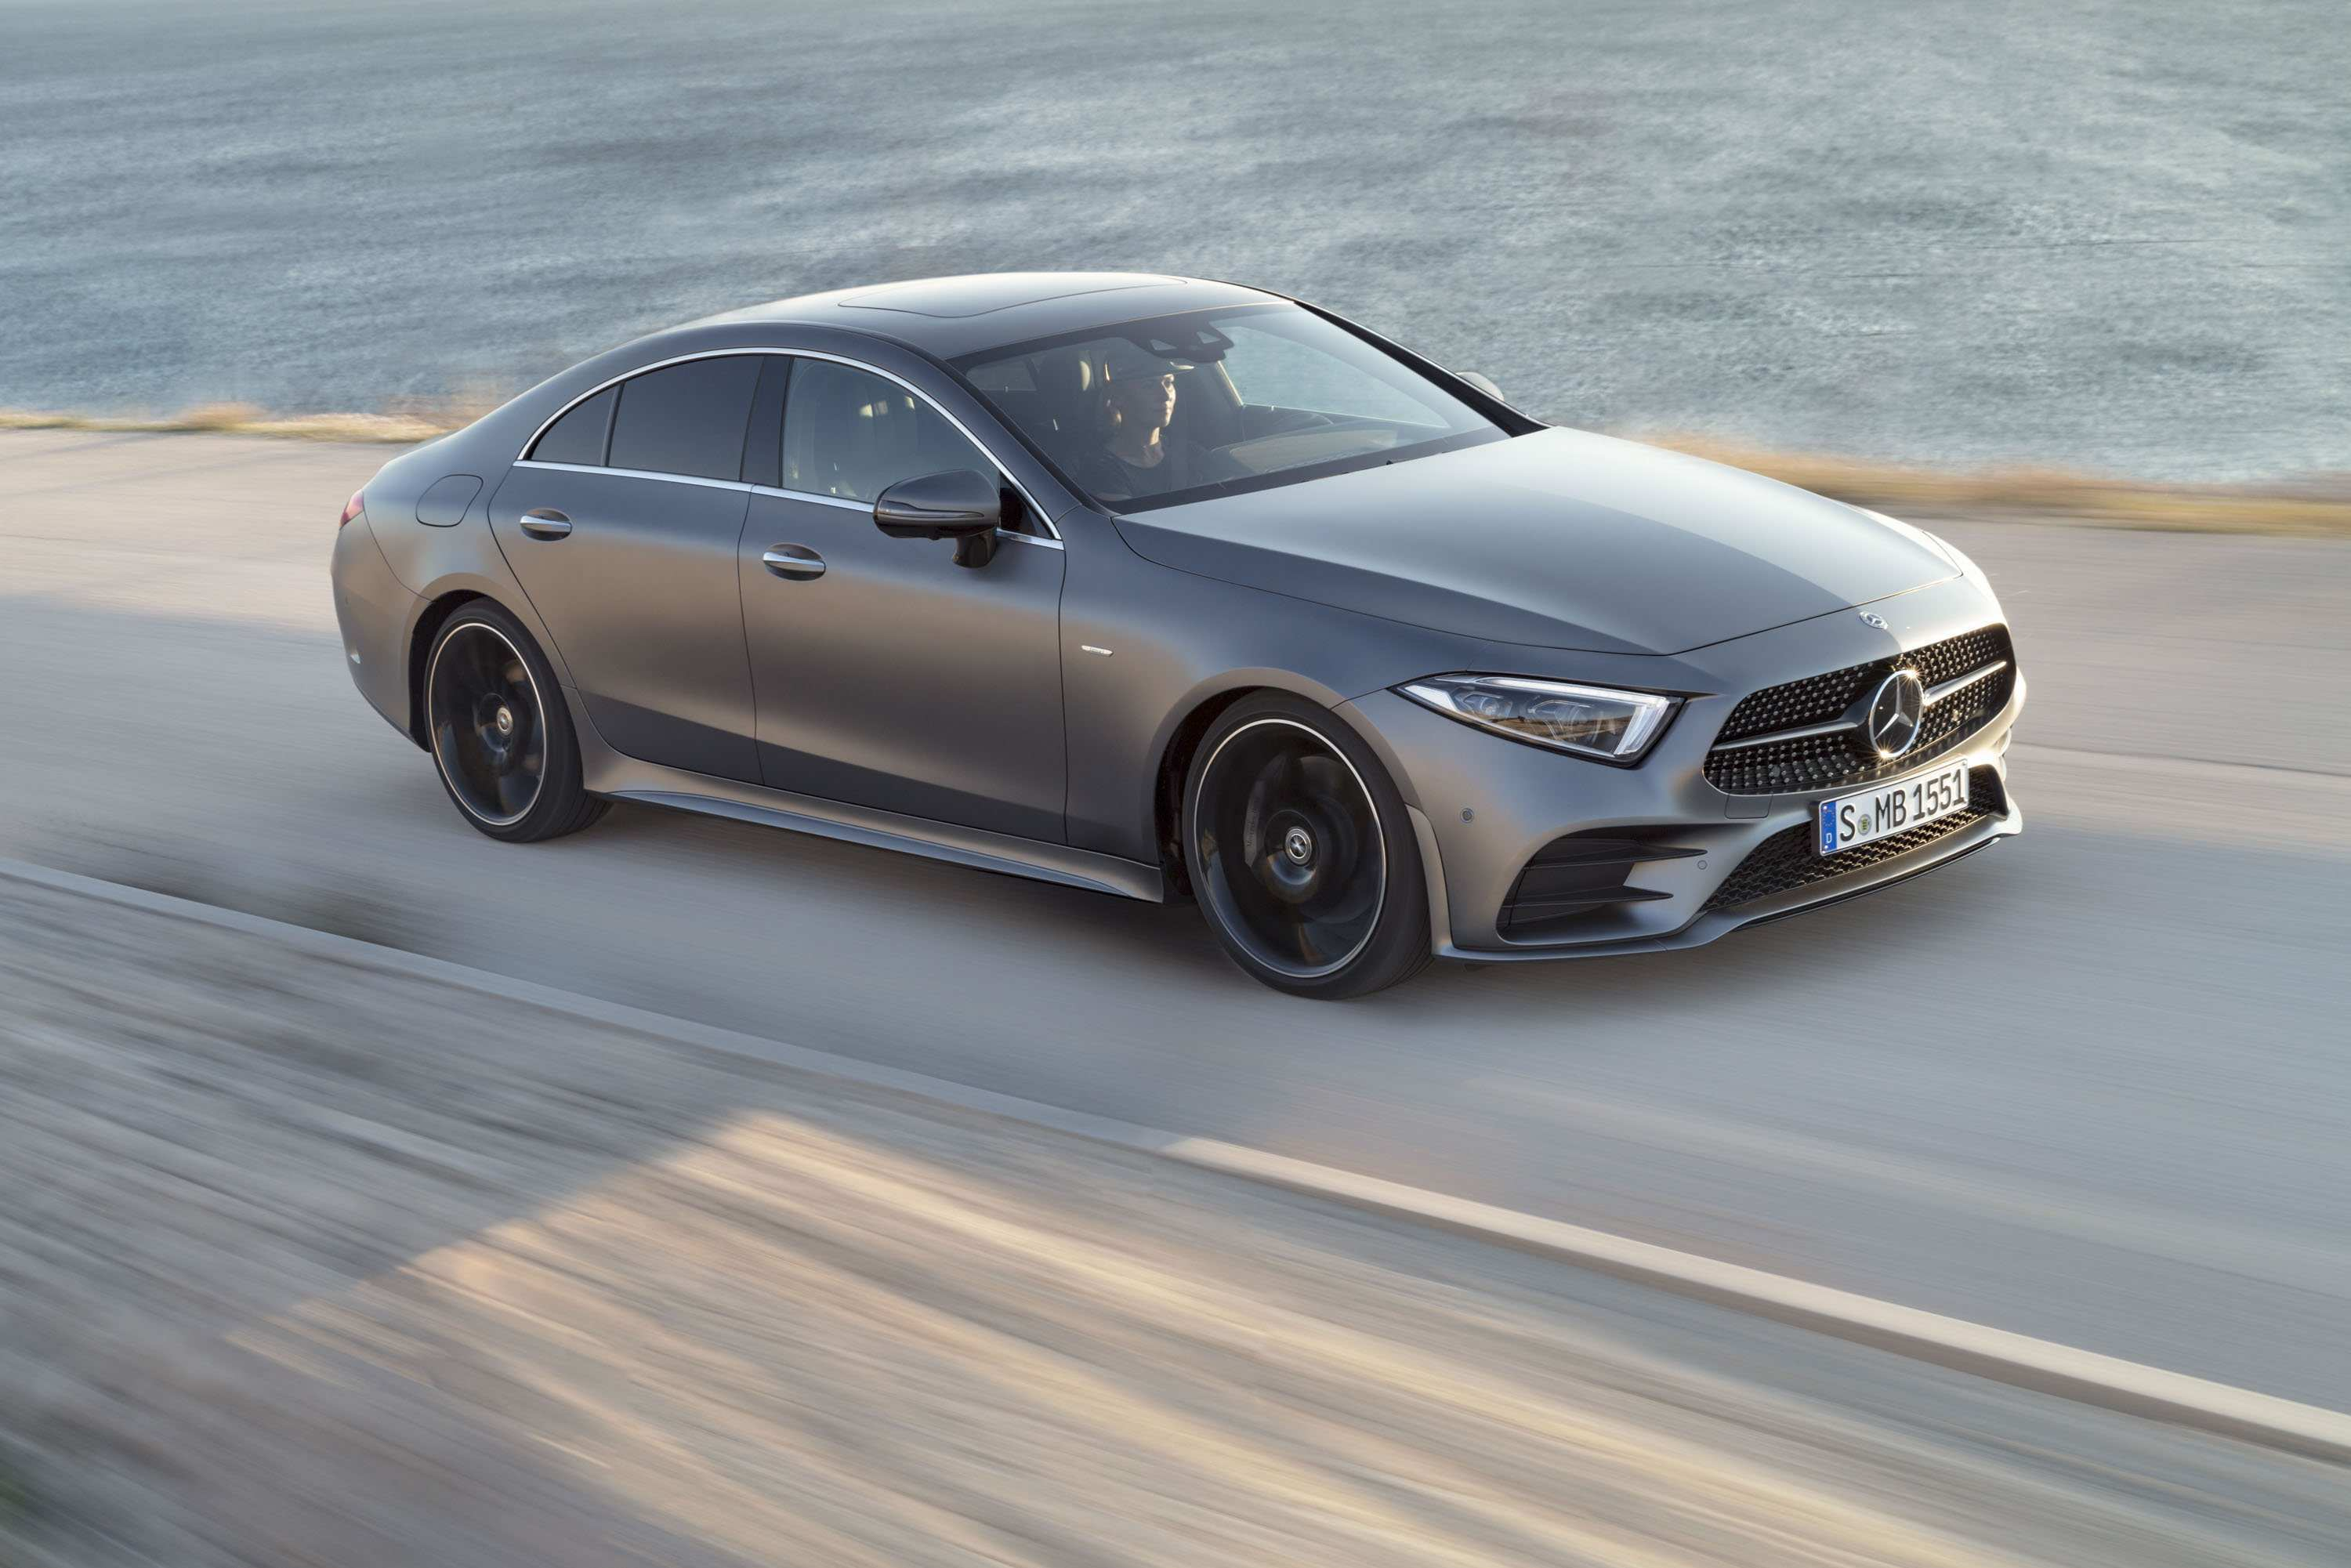 69 Best Review 2020 Mercedes Cls Class Price with 2020 Mercedes Cls Class